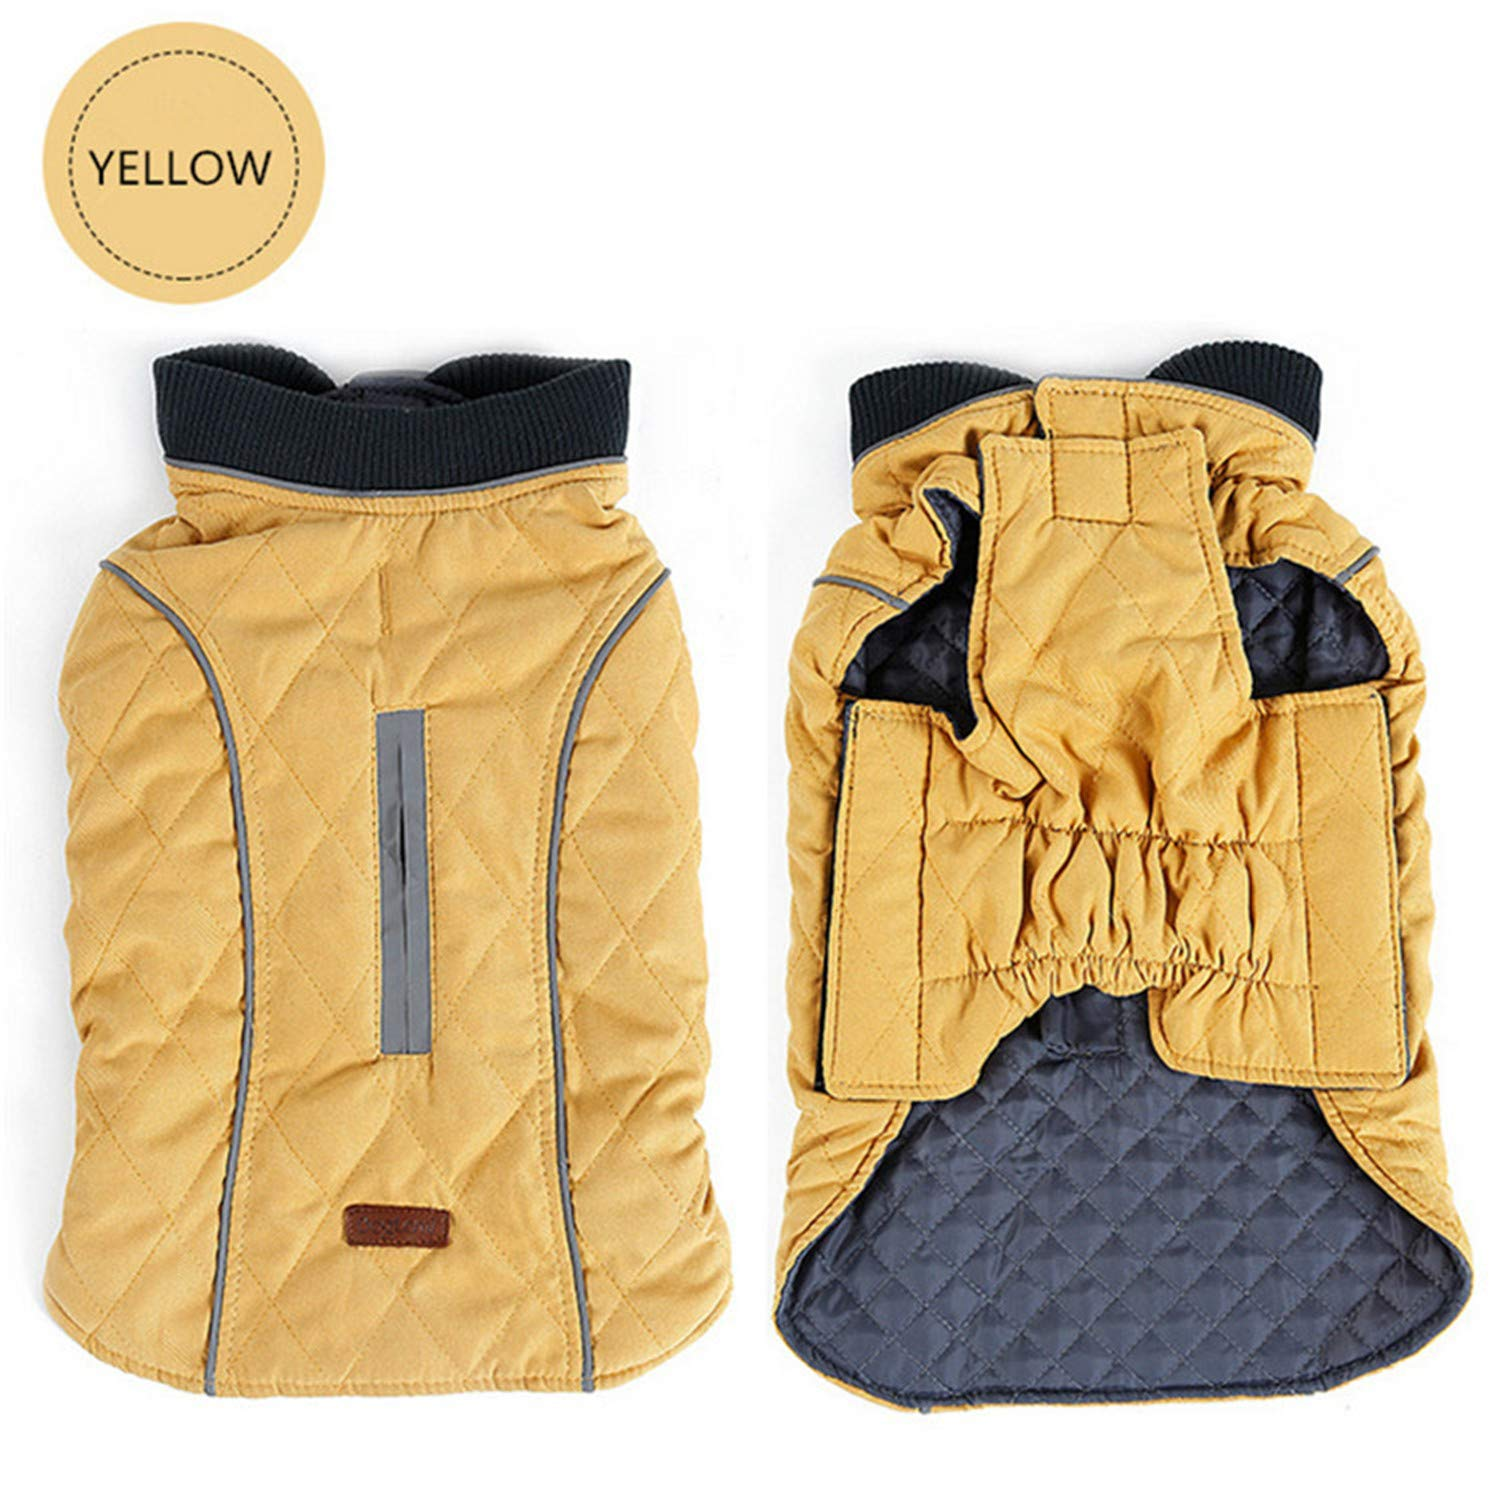 Yellow XL yellow XL Dog Clothes Quilted Dog Coat Water Repellent Winter Dog Pet Jacket Vest Retro Cozy Warm Pet